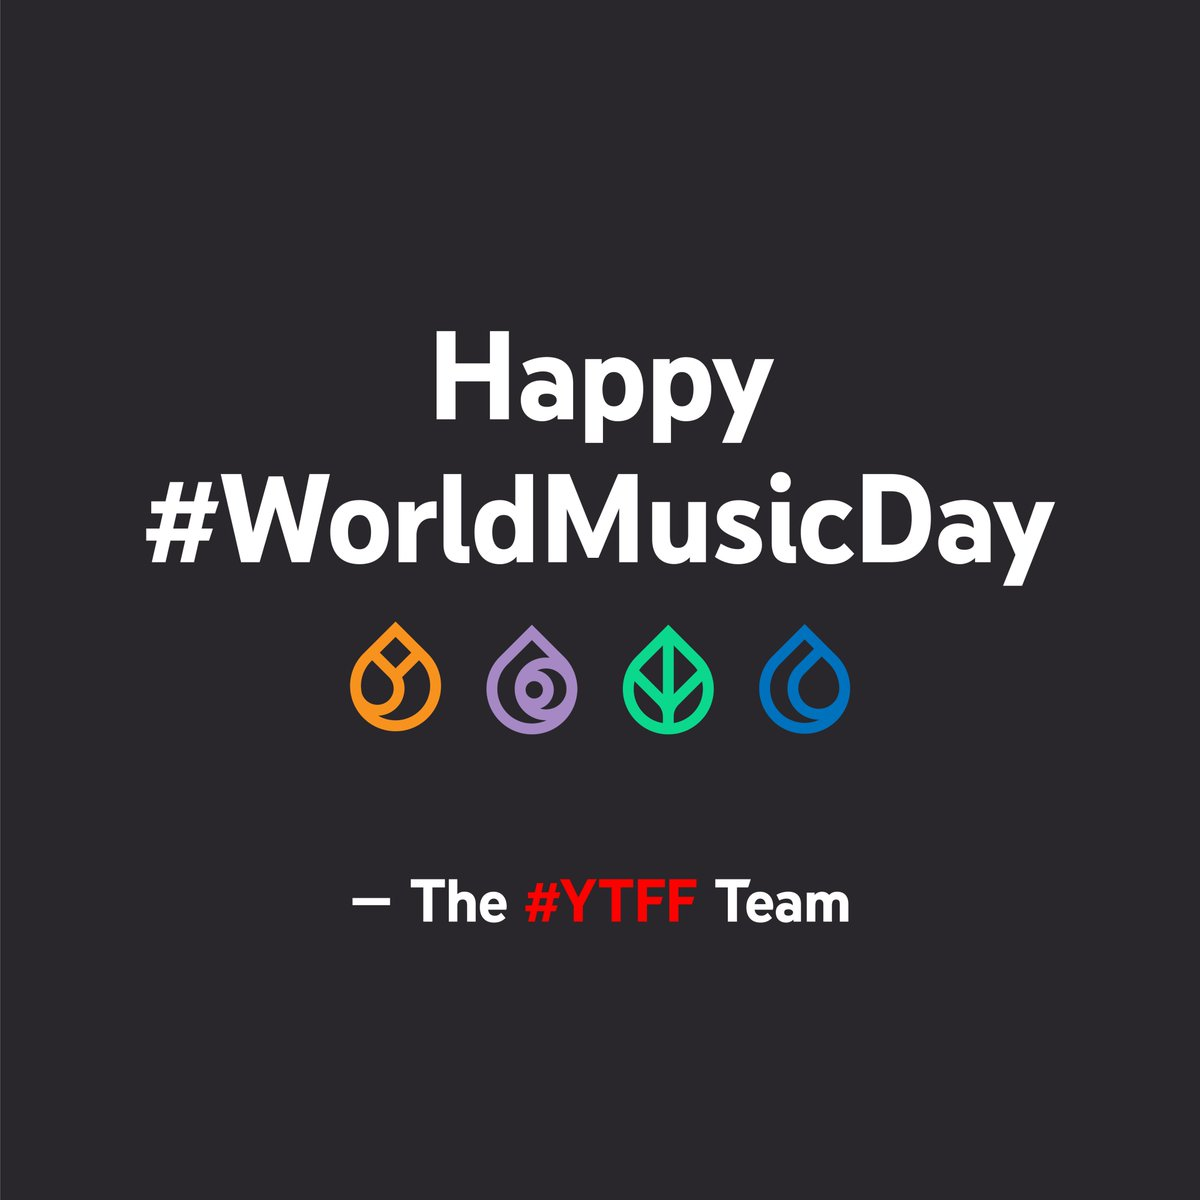 What is your all-time favorite #YTFF music performance? #WorldMusicDay